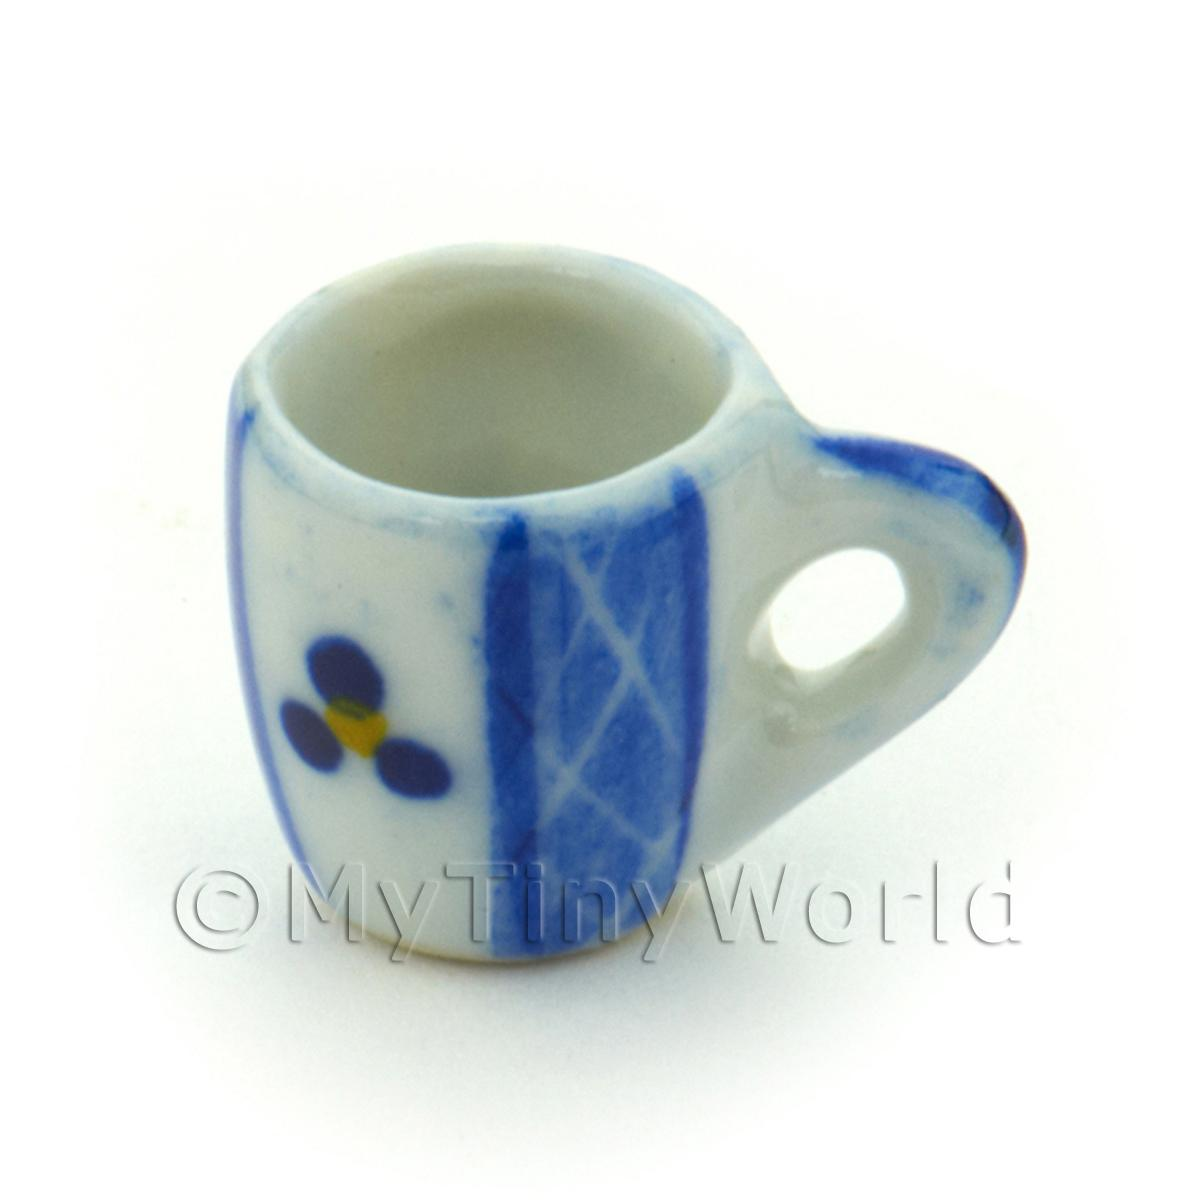 Dolls House Miniature Blue Lace Design Ceramic Soup Mug